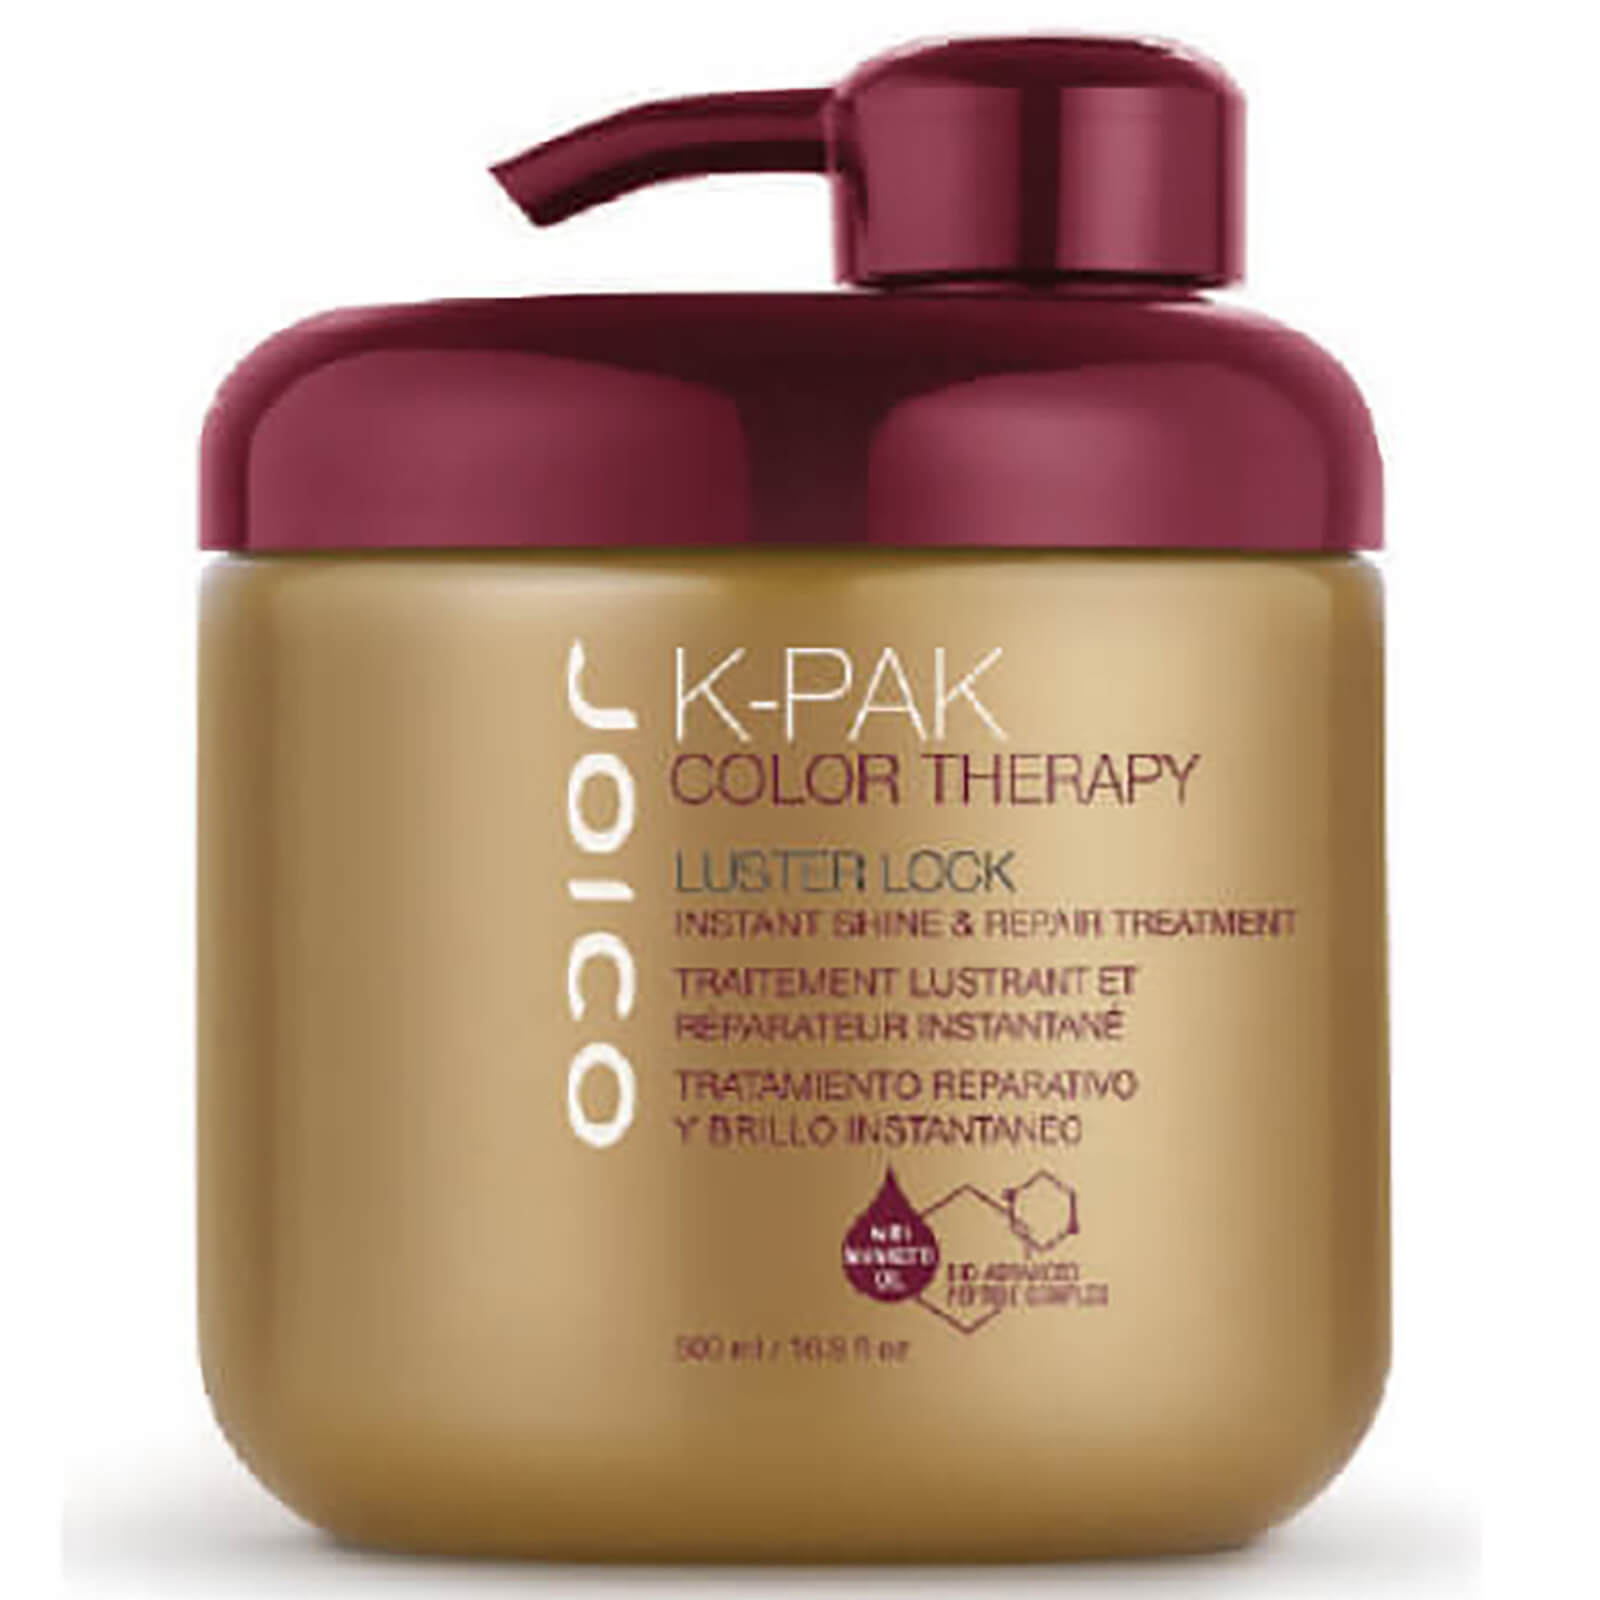 Lüster Joico K Pak Color Therapy Luster Lock Instant Shine And Repair Treatment 500ml Worth 62 32